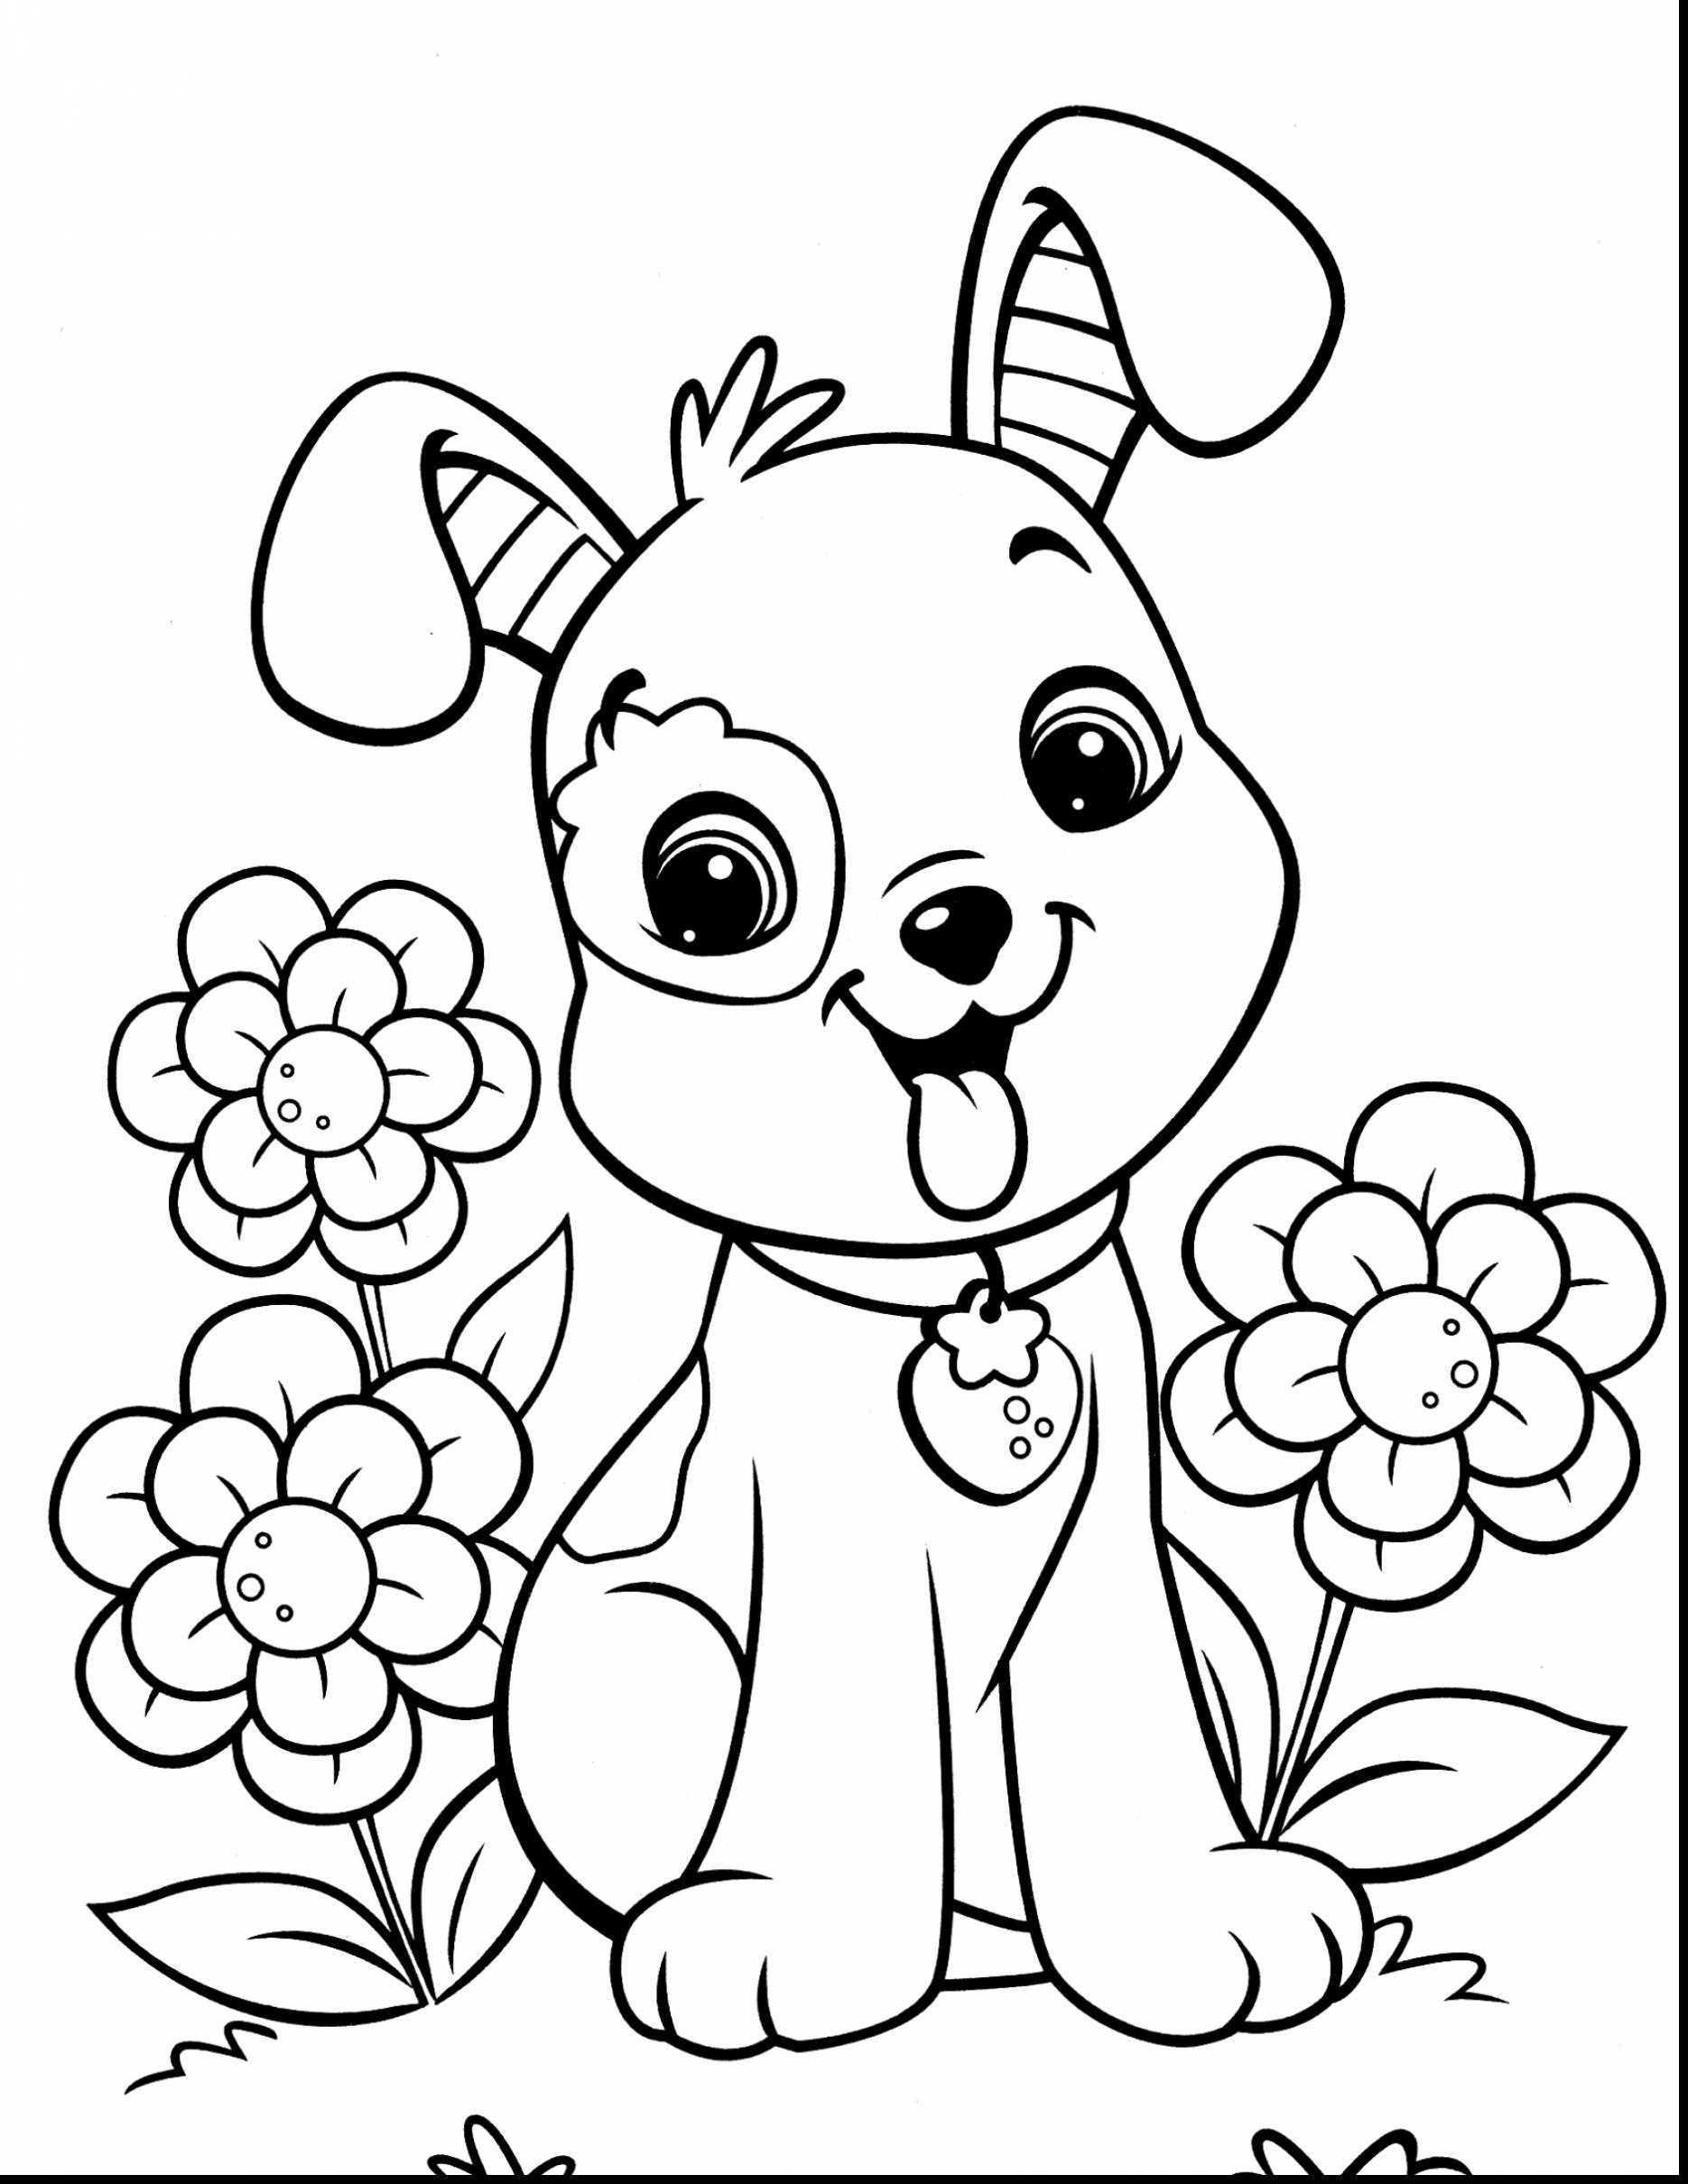 1870x2420 Survival Birthday Dog Coloring Pages Free Animal Free Printable